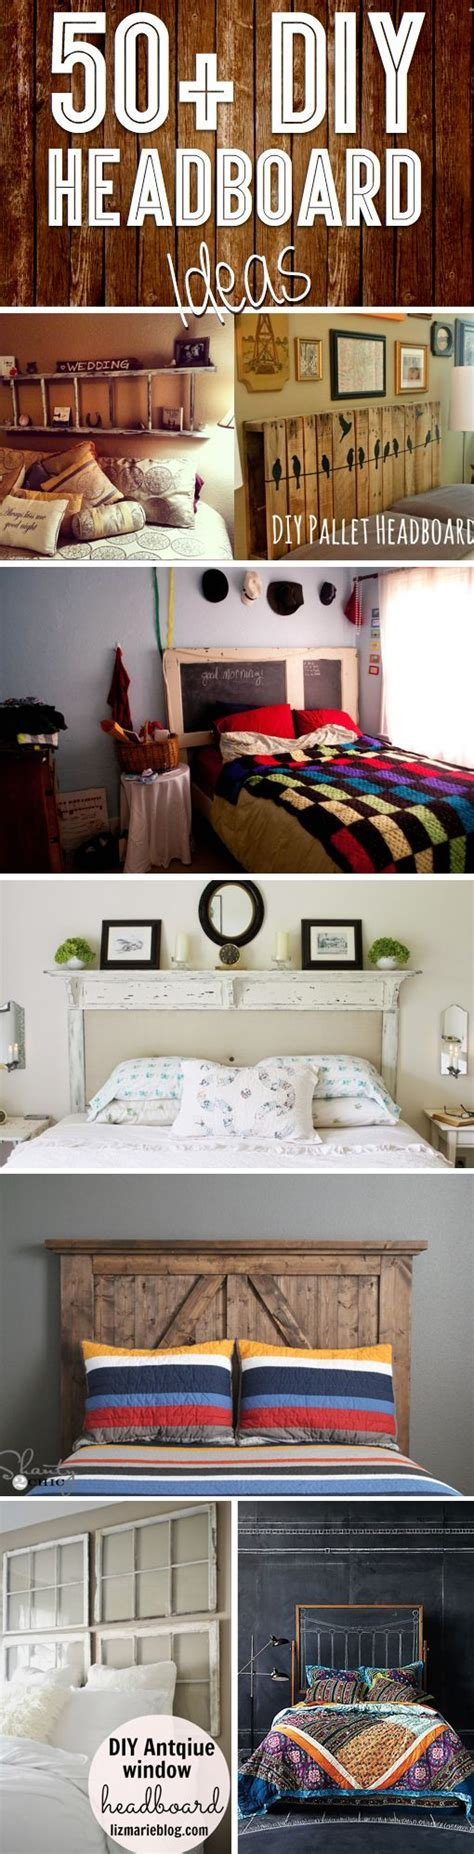 How To Spice Up The Bedroom For Your by 50 Outstanding Diy Headboard Ideas To Spice Up Your